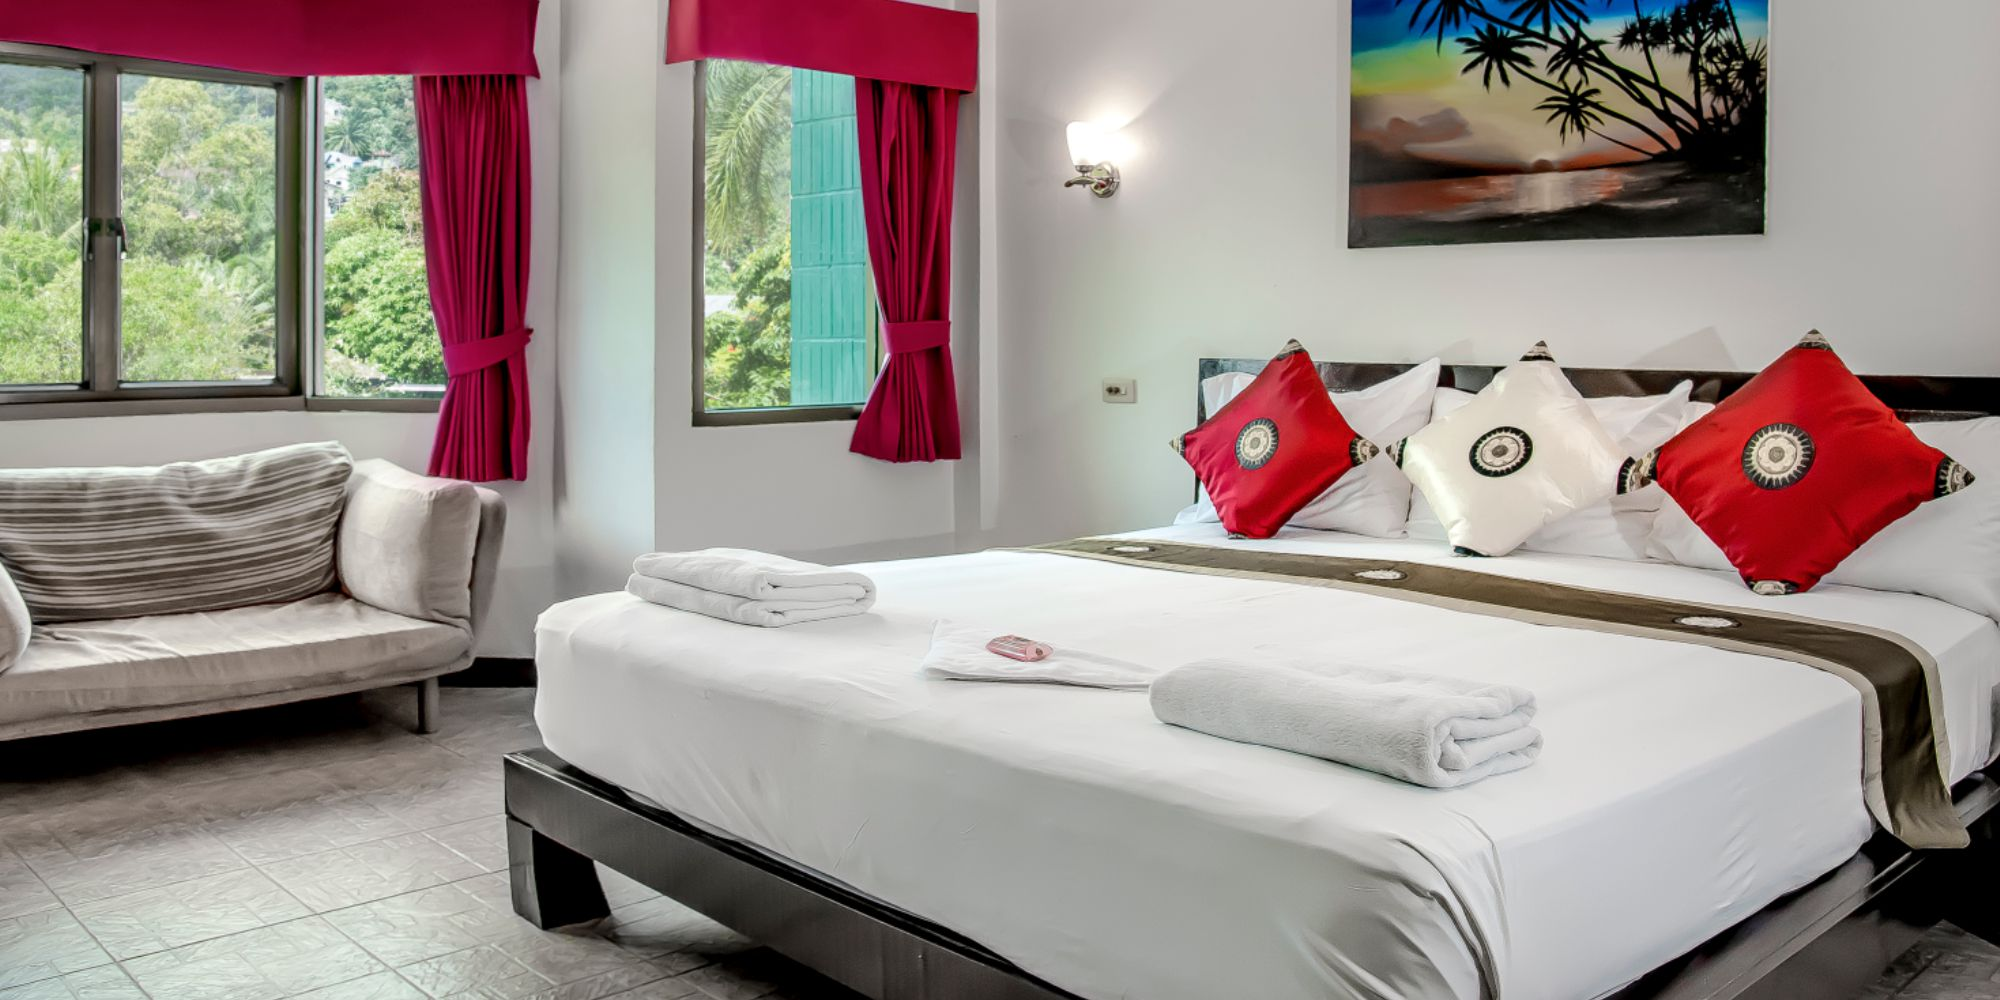 Angus O'Tool's | Where to Stay in Karon